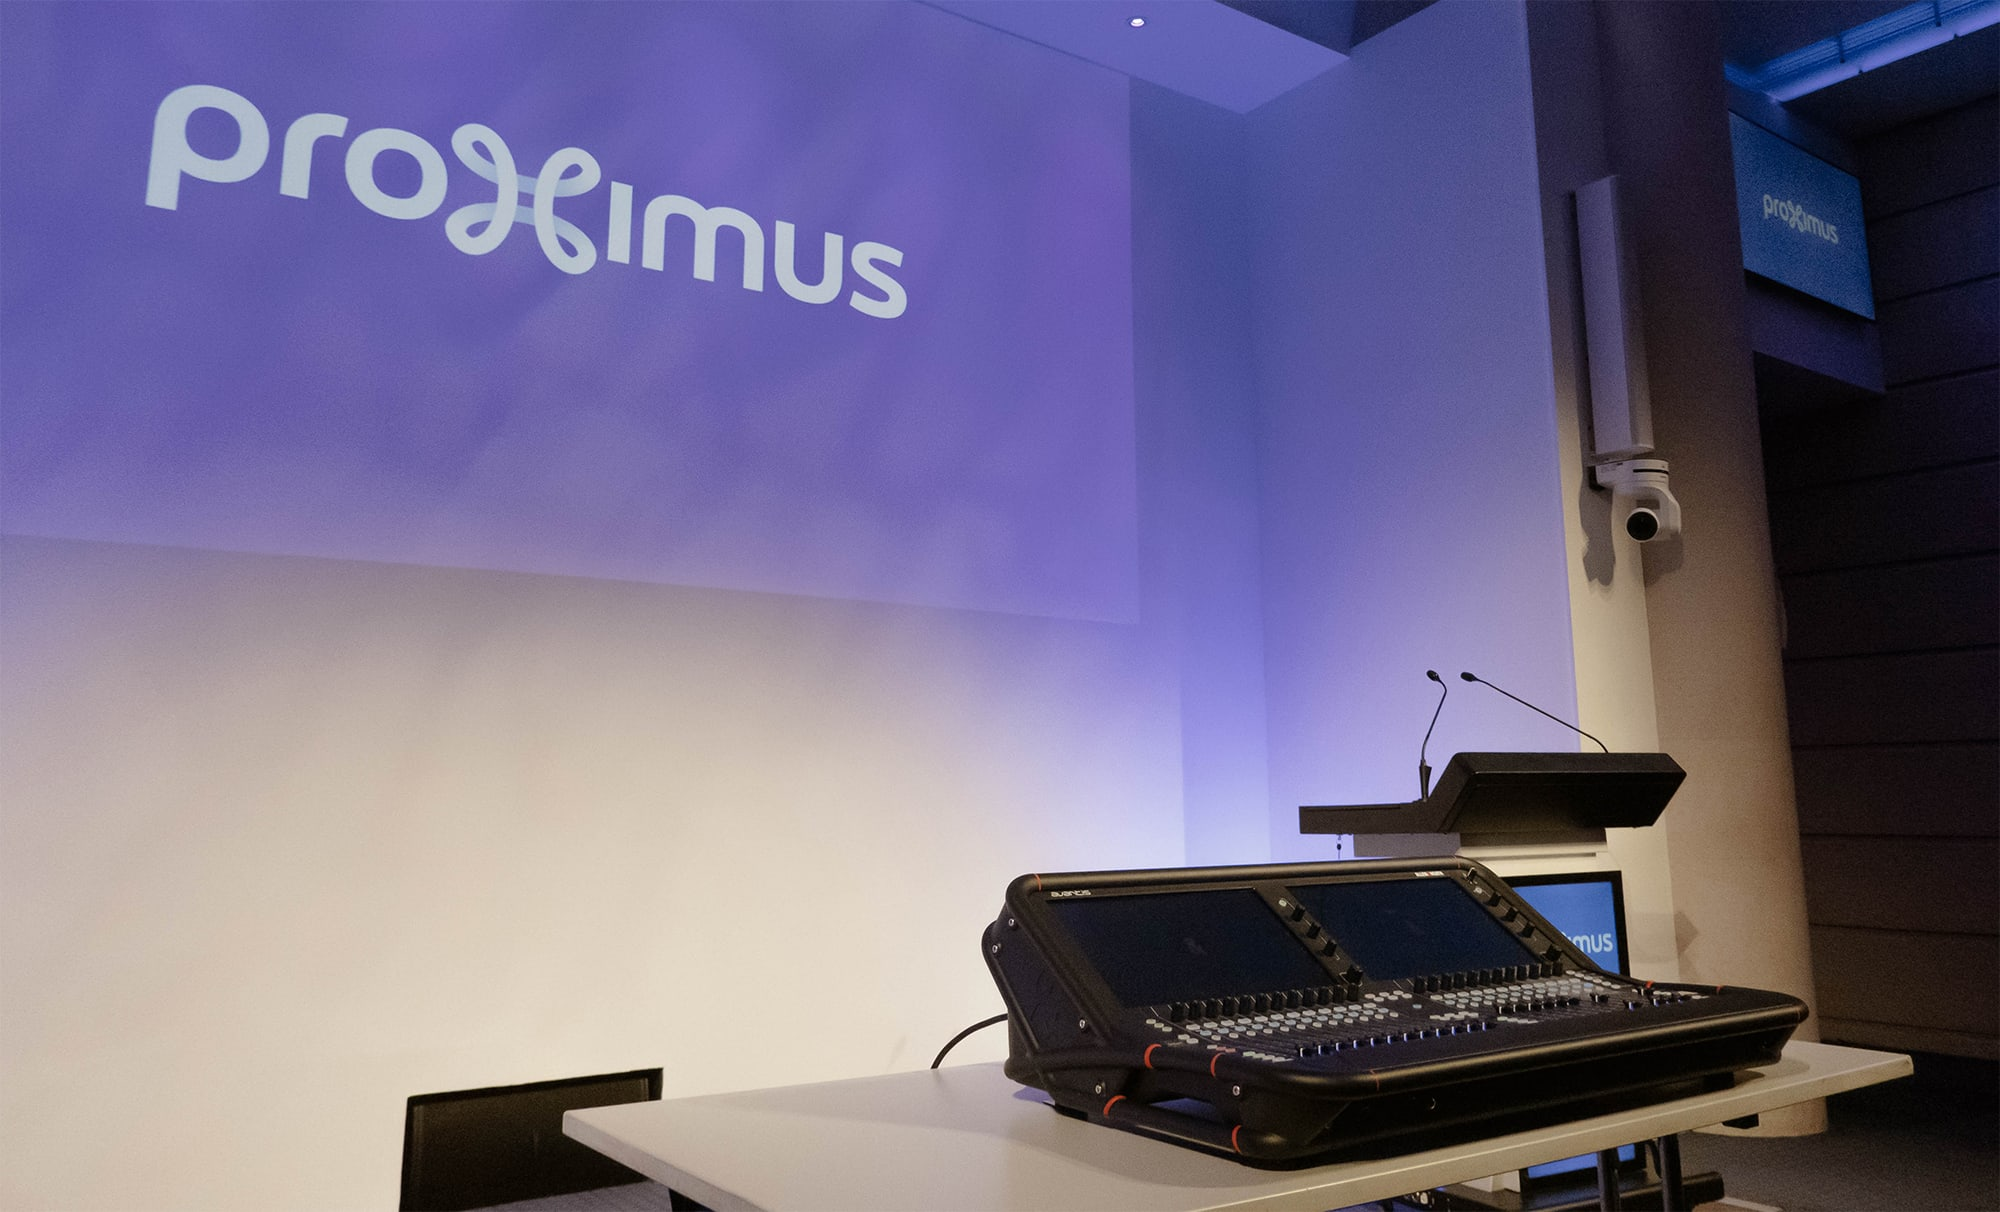 Proximus Chooses Allen & Heath's Avantis For The Upgrade Of Their Mixing Facilities 1